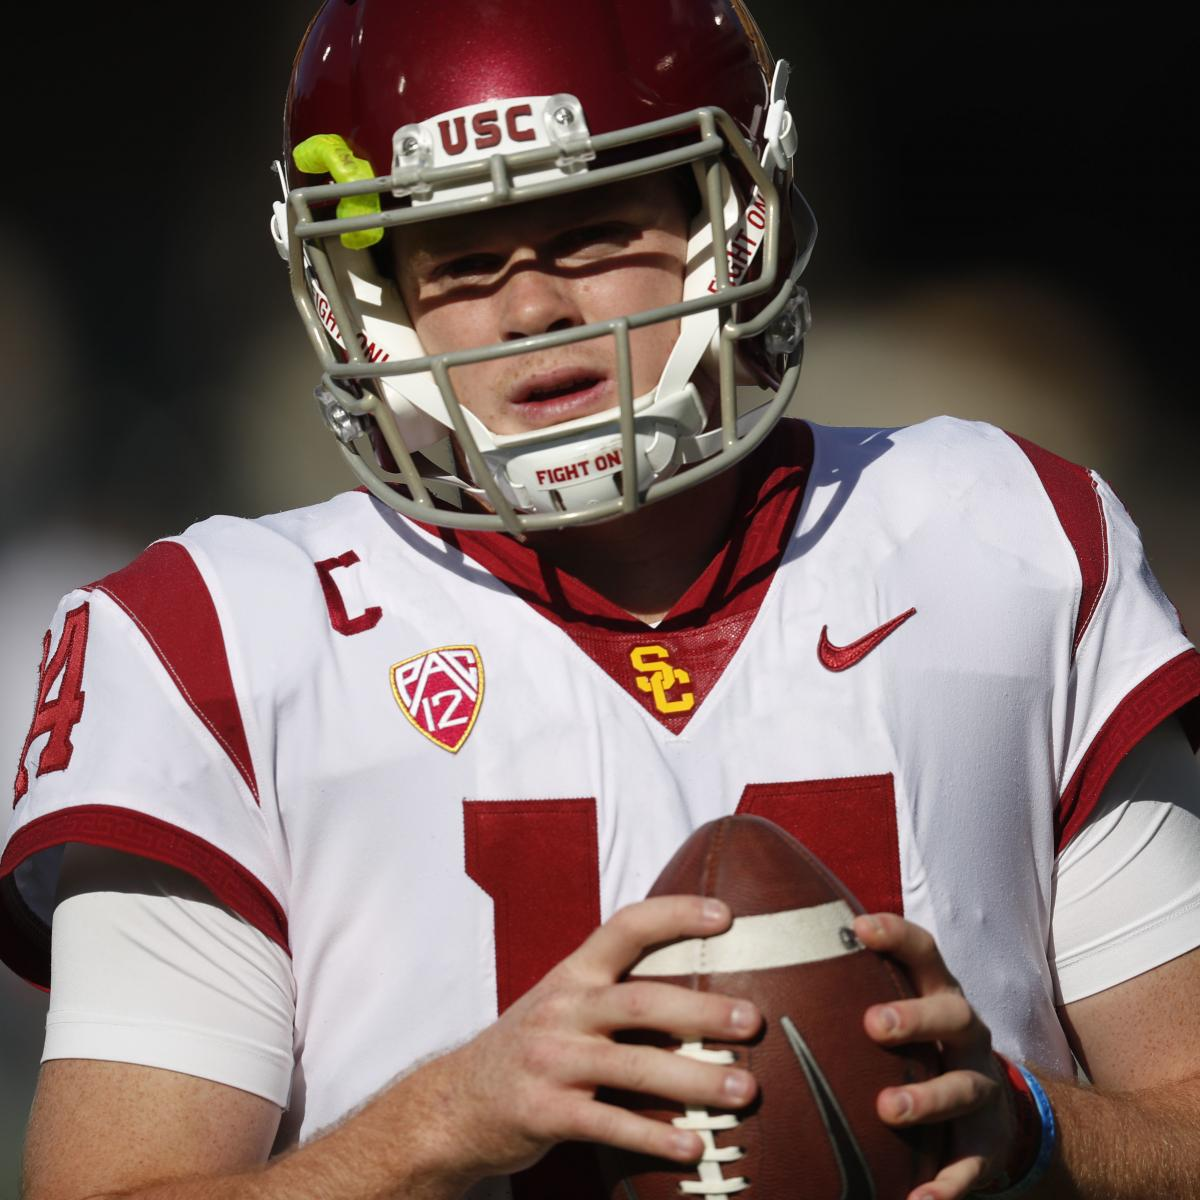 Feed Me Nfl: Sam Darnold Says 'I'd Be Honored To Play For Any Team